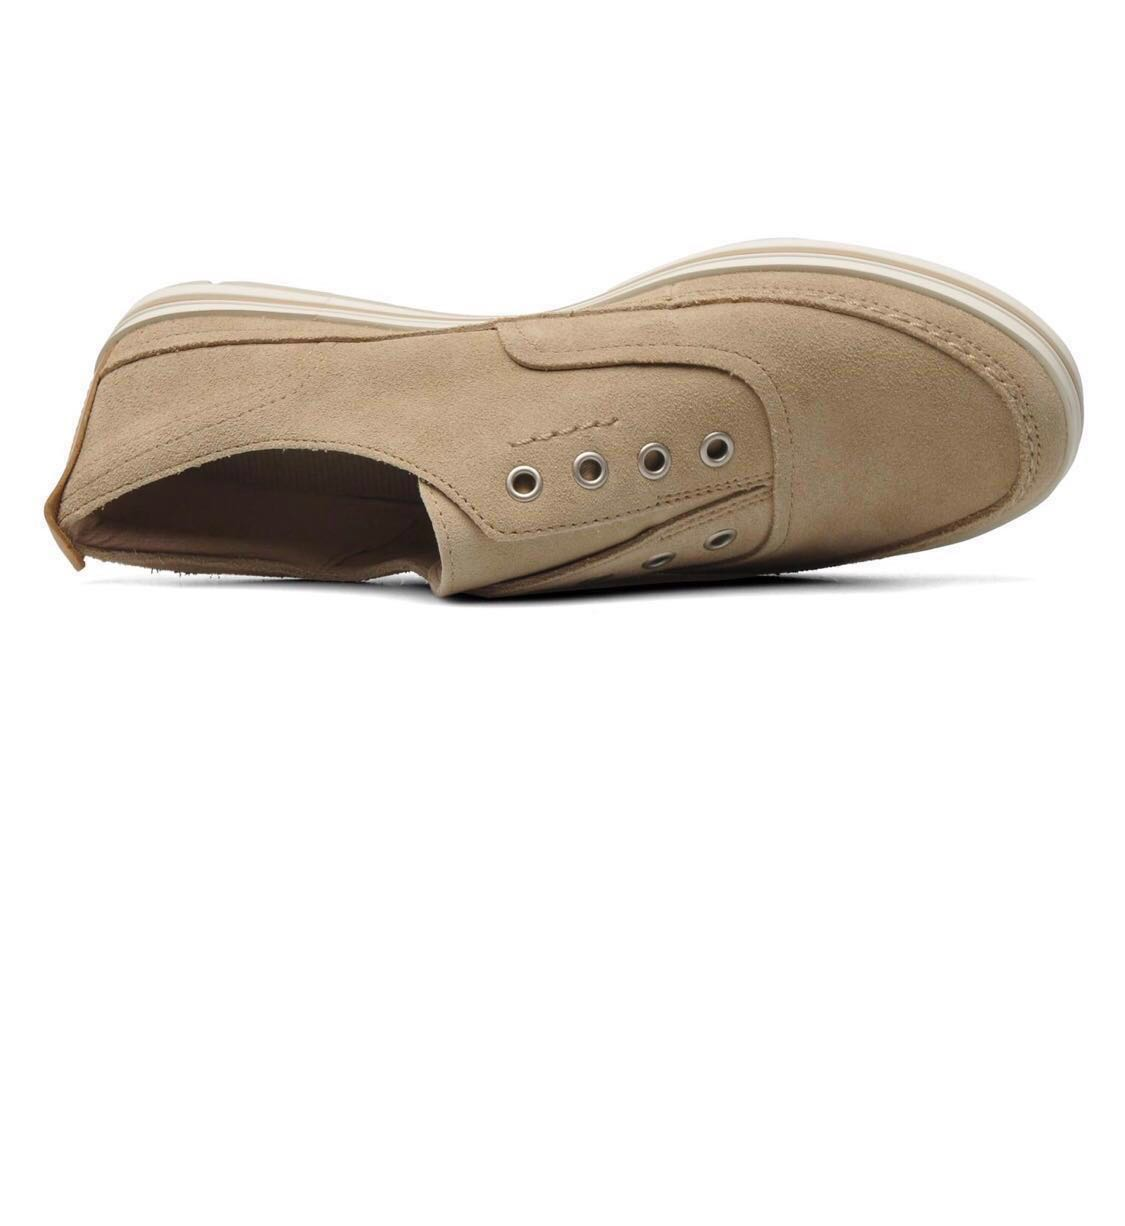 a3f2be66d9f1  SALE  Timberland - Women s Earthkeepers® Casco Bay Laceless Slip-On Shoes